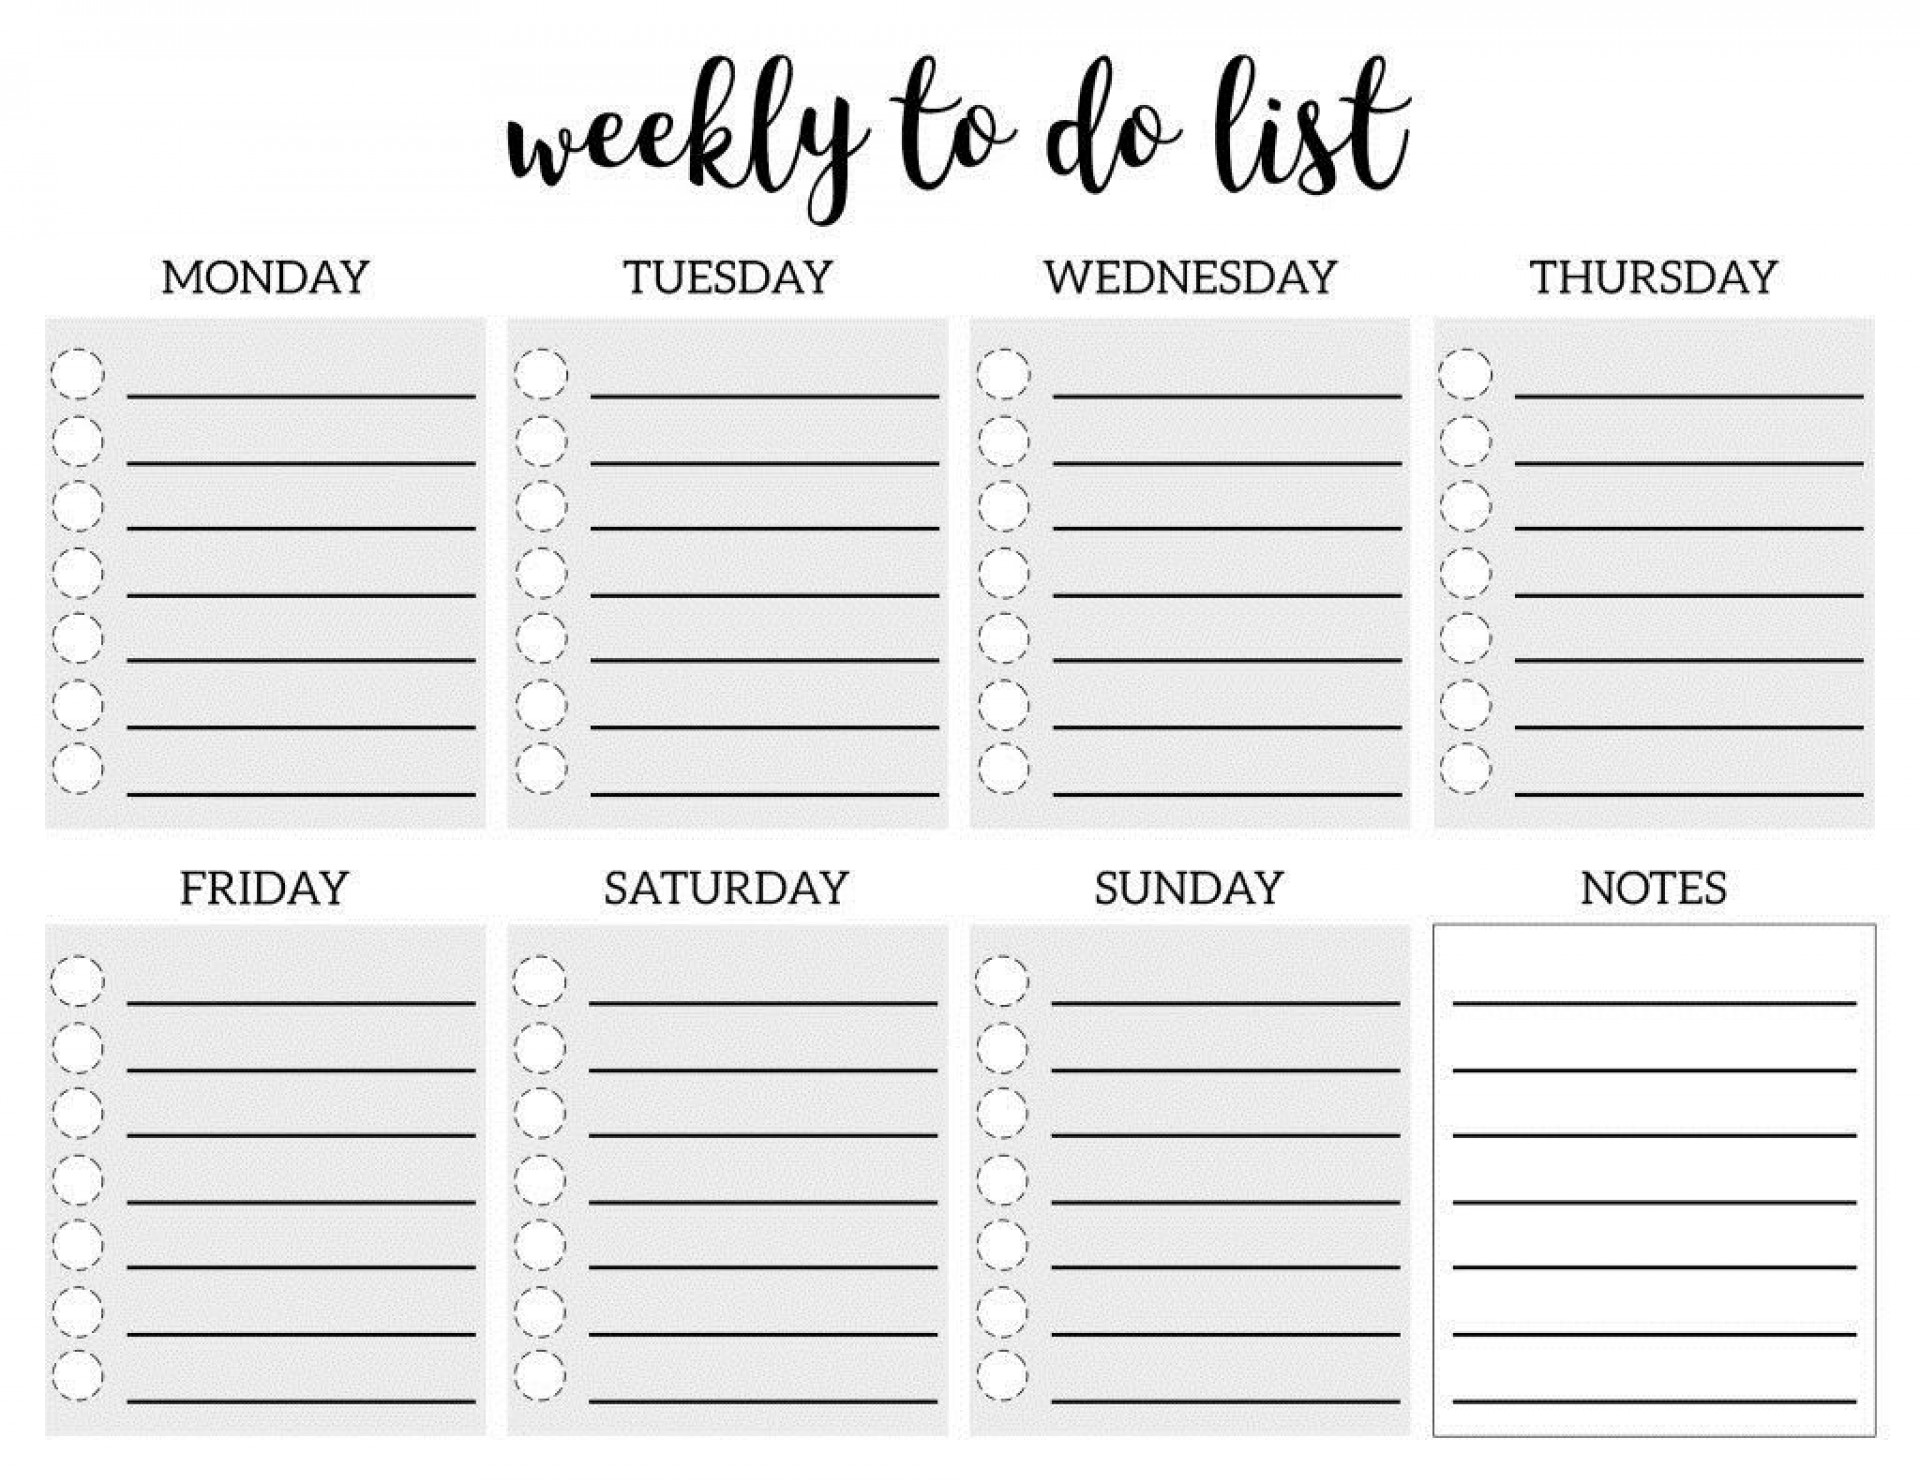 005 Remarkable To Do Checklist Template Idea 1920